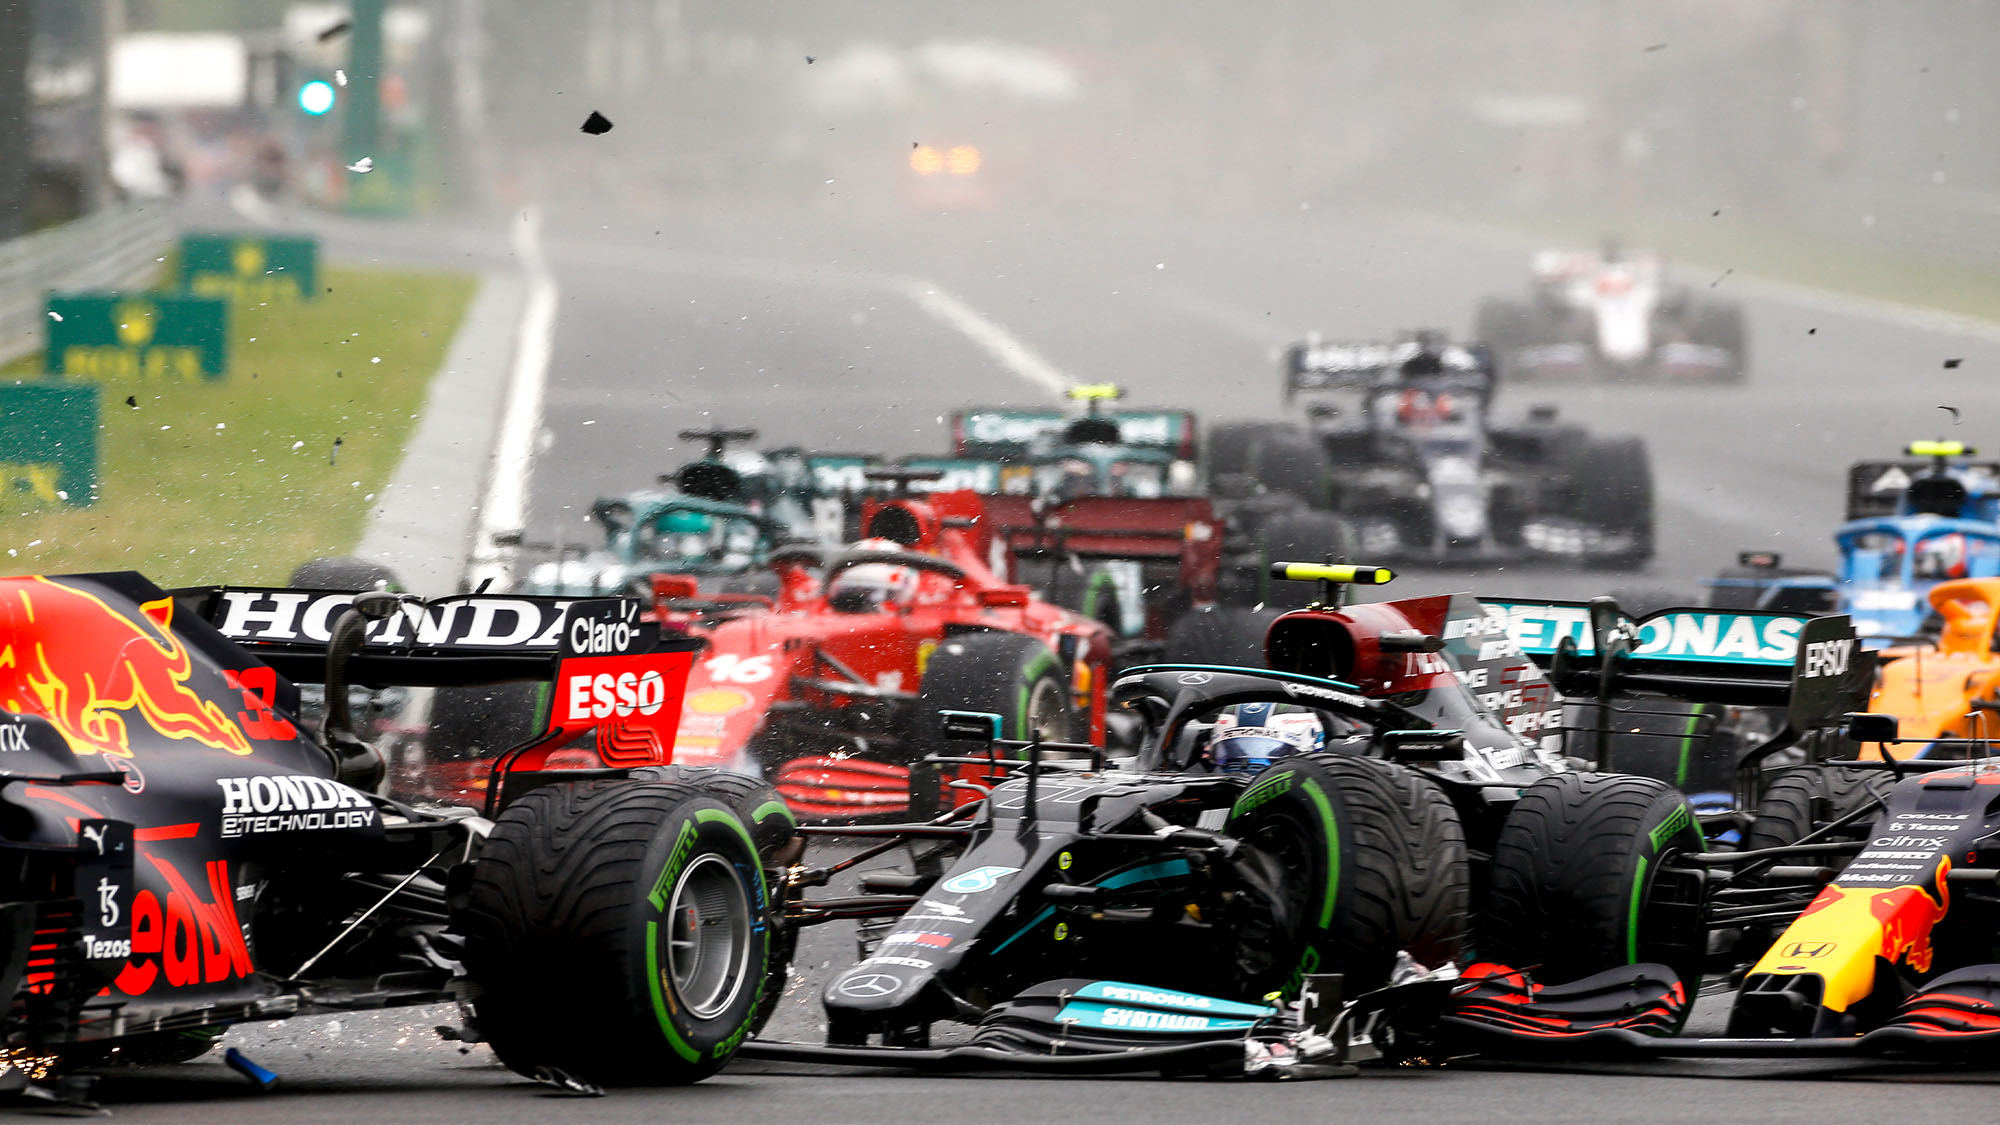 crash, accident, start of the race, depart, 77 BOTTAS Valtteri (fin), Mercedes AMG F1 GP W12 E Performance, action during the Formula 1 Magyar Nagydij 2021, Hungarian Grand Prix, 11th round of the 2021 FIA Formula One World Championship from July 30 to August 1, 2021 on the Hungaroring, in Mogyorod, near Budapest, Hungary - Photo DPPI